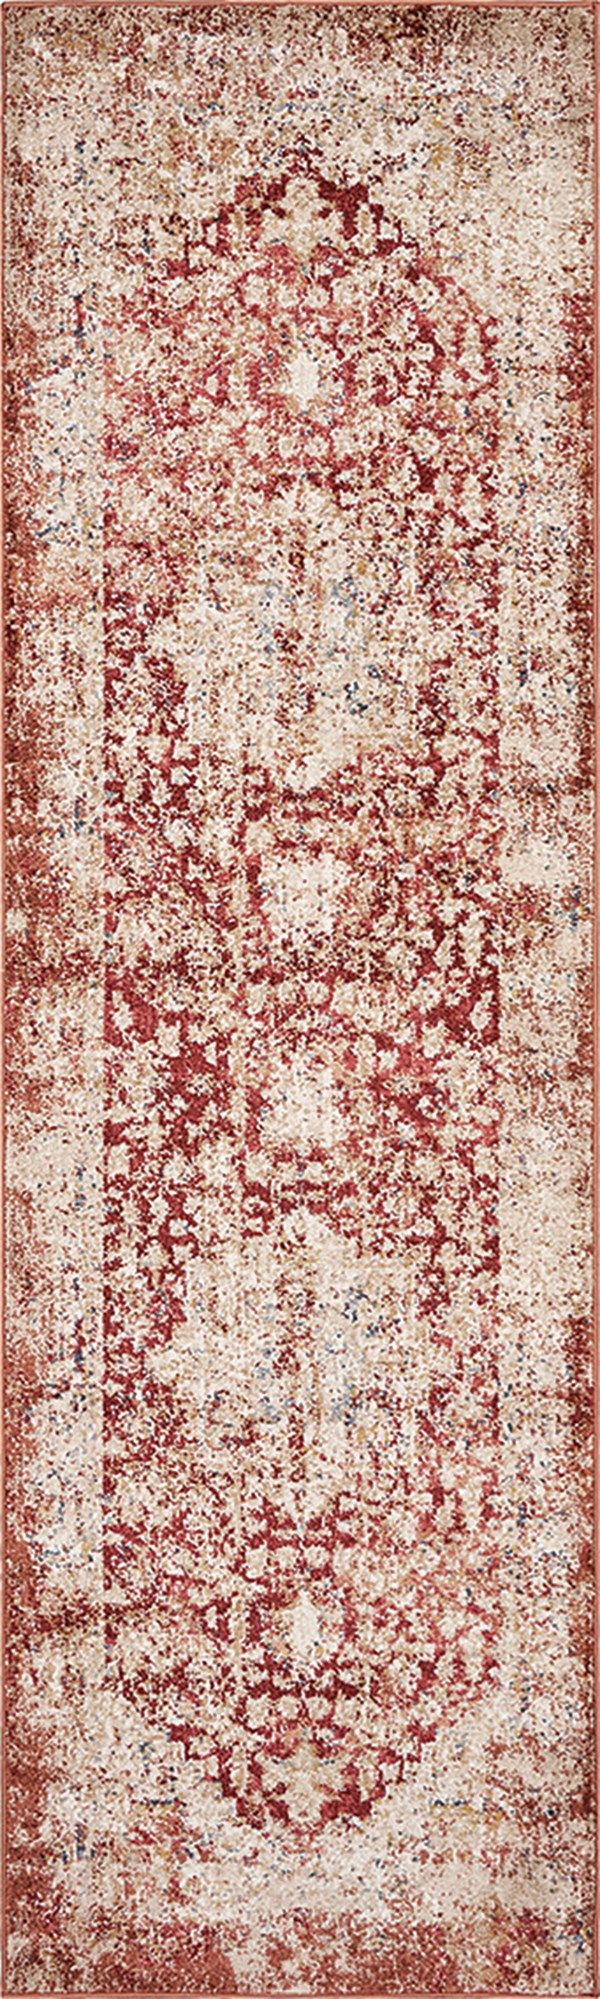 Spice, Red (6355) Vintage / Overdyed Area Rug